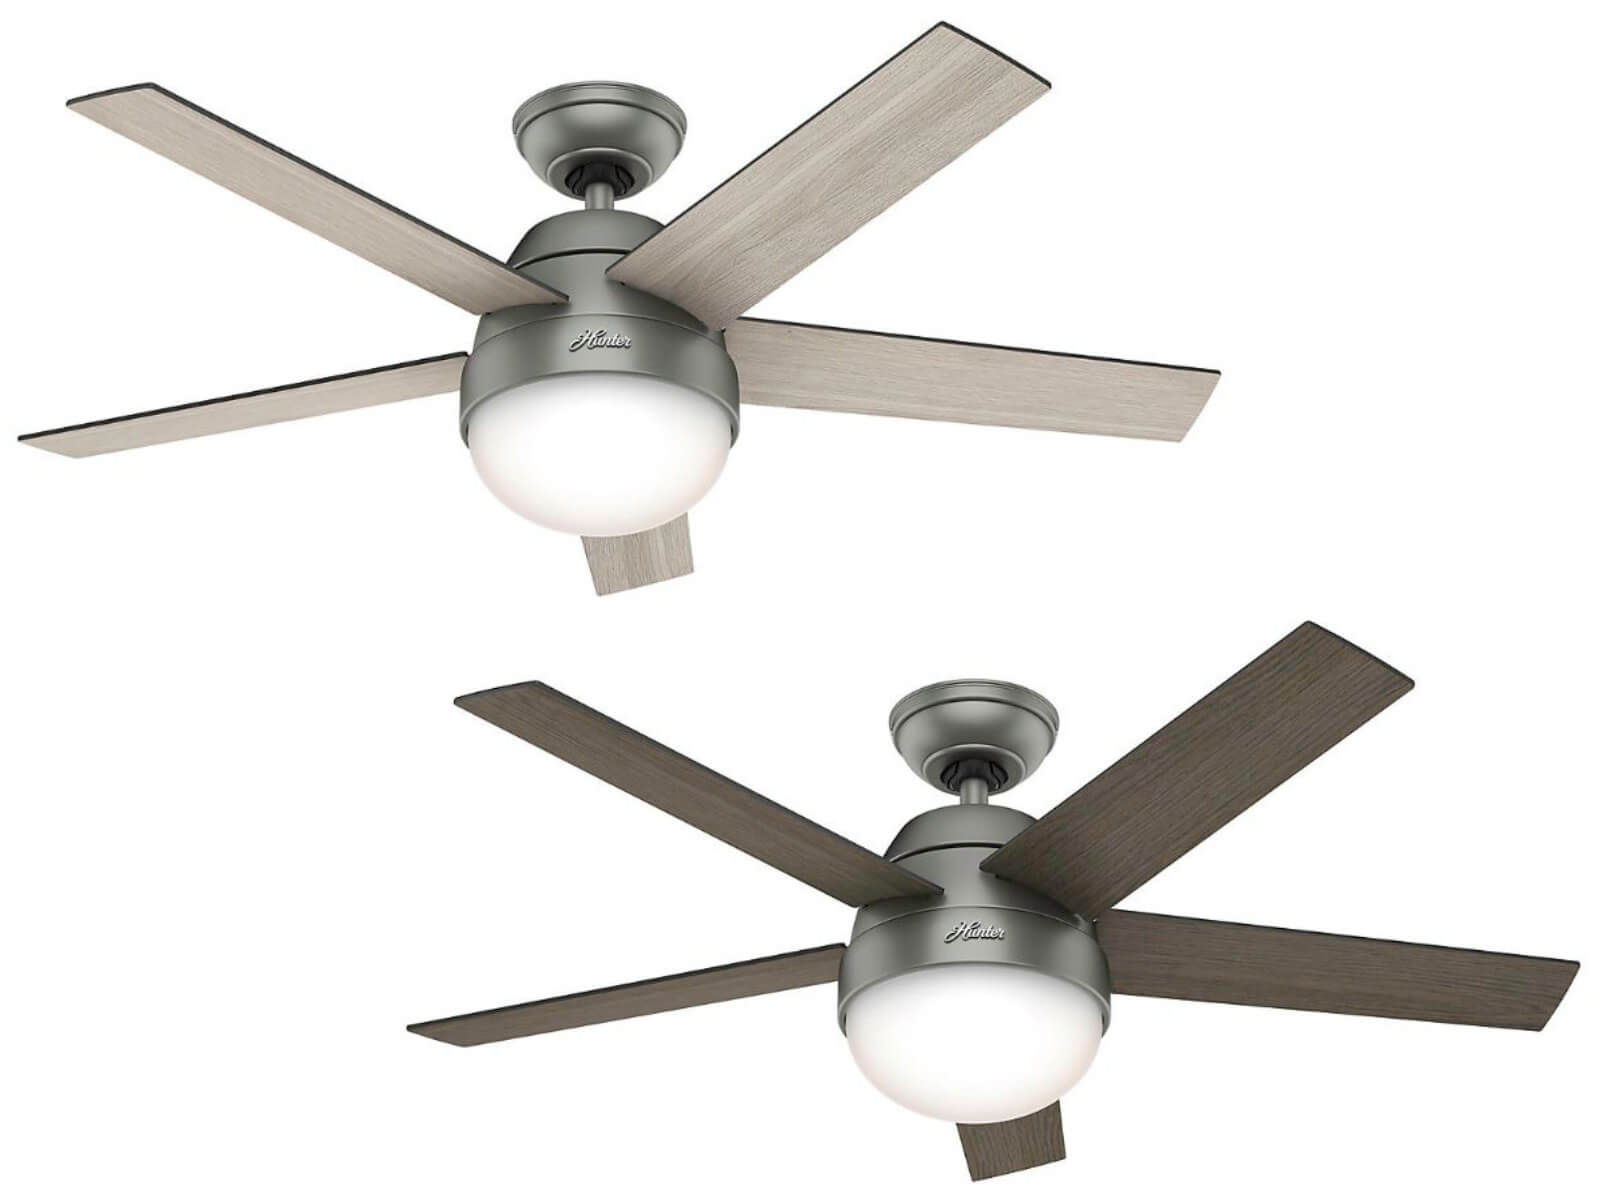 Ceiling Fan Stile Silver With Light And Remote Home Commercial Heaters Ventilation Ceiling Fans Uk